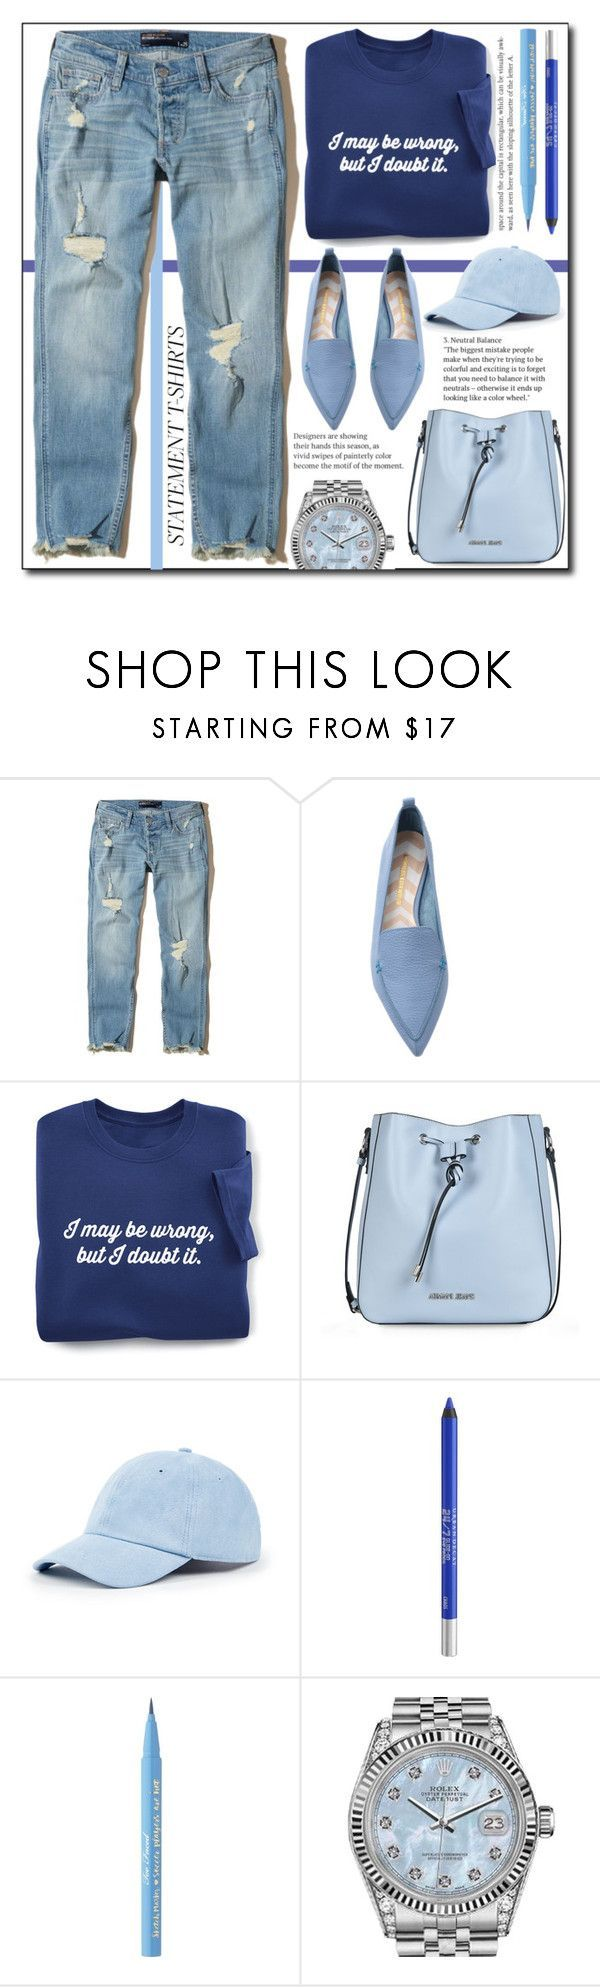 """""""Statement T.shirts (casual) !"""" by emapolyvore ❤ liked on Polyvore featuring Hollister Co., Nicholas Kirkwood, Armani Jeans, Sole Society, Urban Decay, Too Faced Cosmetics, Rolex, flats, jeans and polyvoreeditorial"""